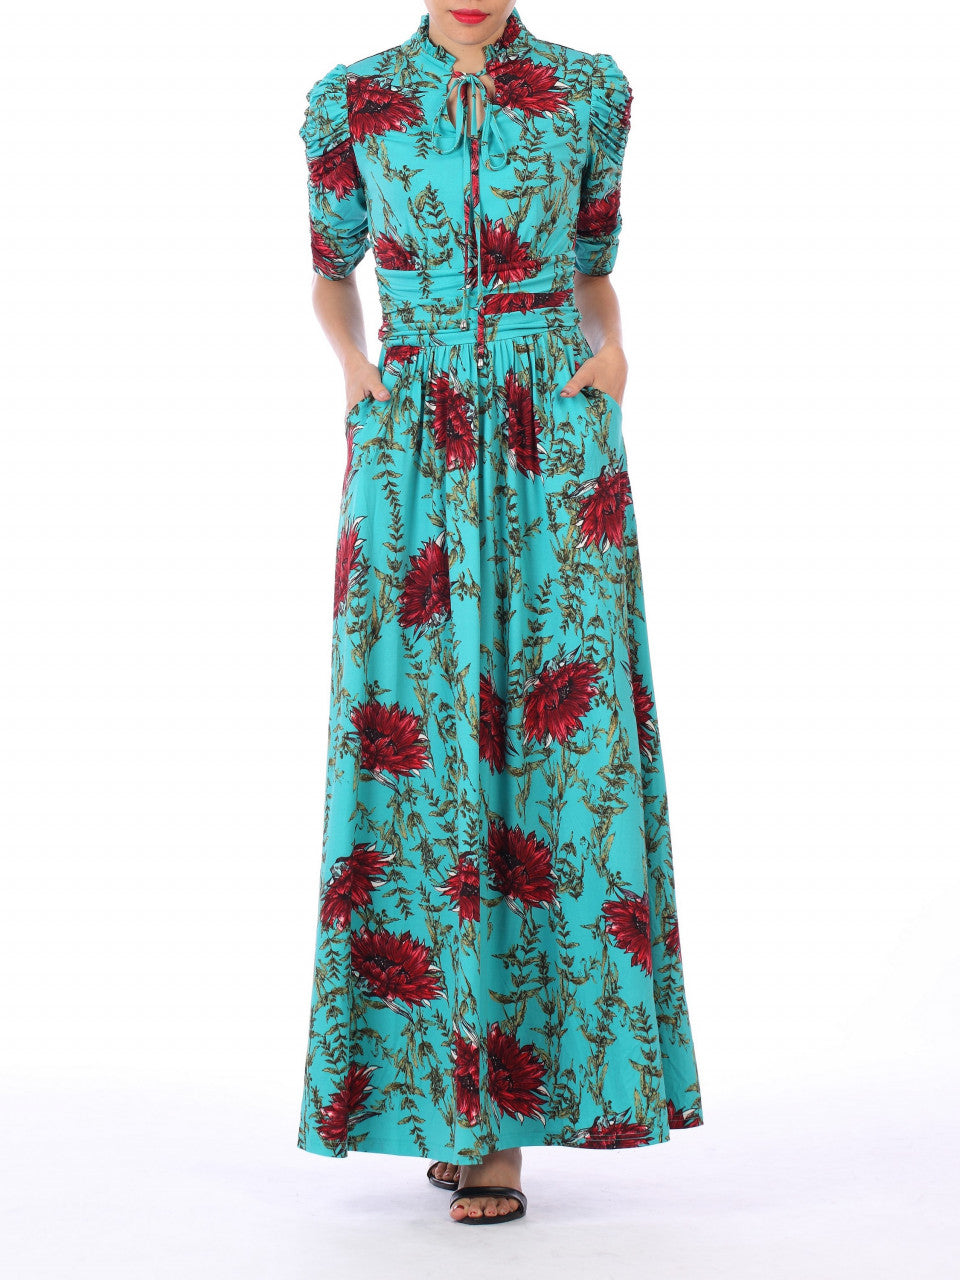 d9f594c2b7 Load image into Gallery viewer, Jolie Moi Tie Collar Maxi Dress, Teal  Floral ...